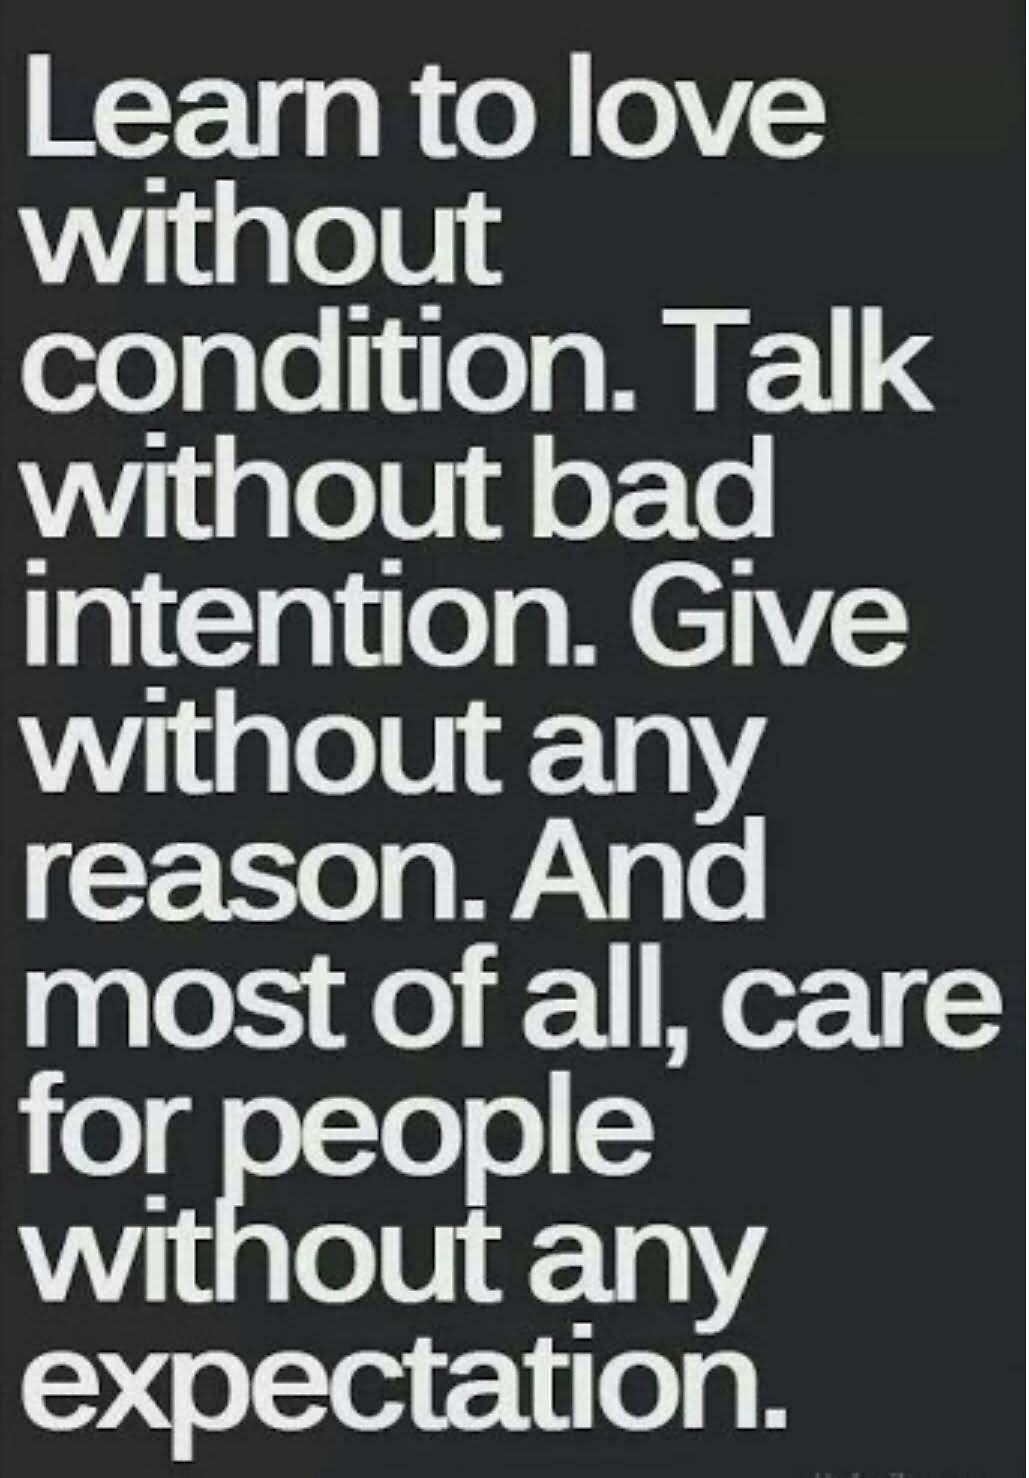 Learn To Love Without Condition. Talk Wiothout Bad Intention. Give Without Any Reason